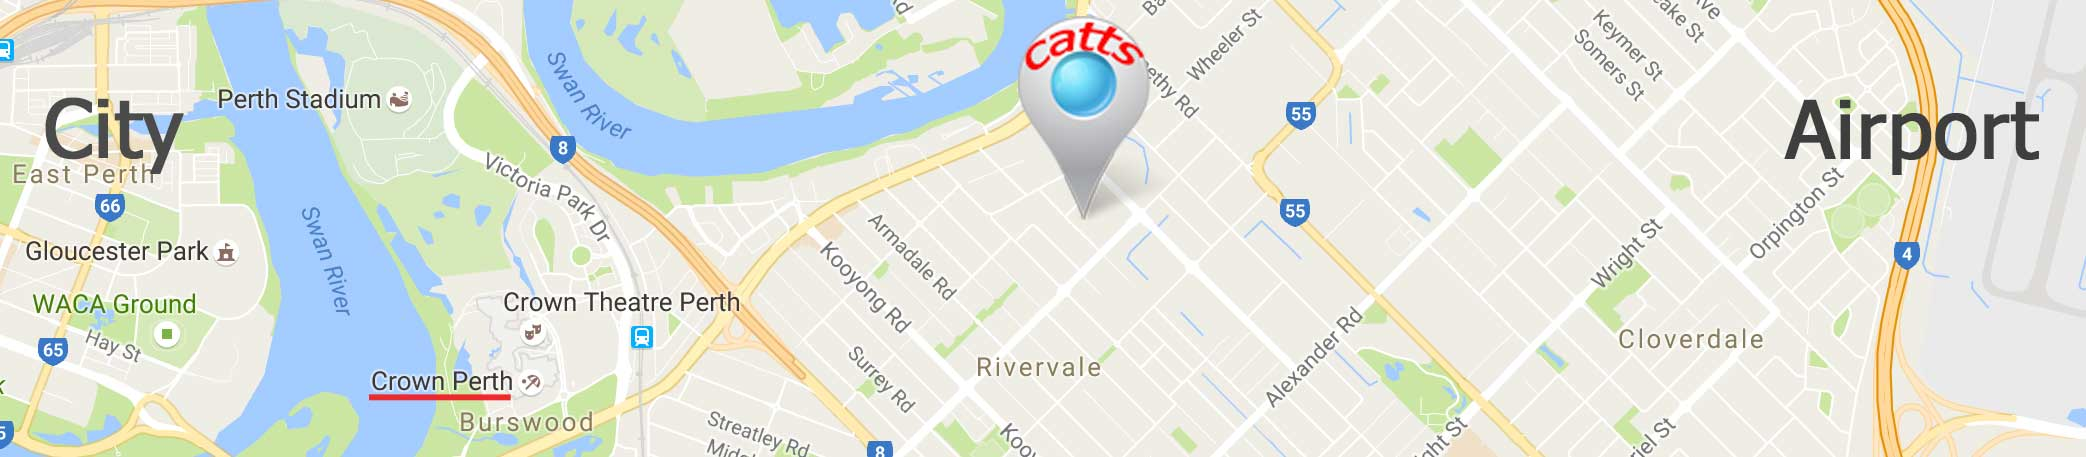 Catts Location Rivervale